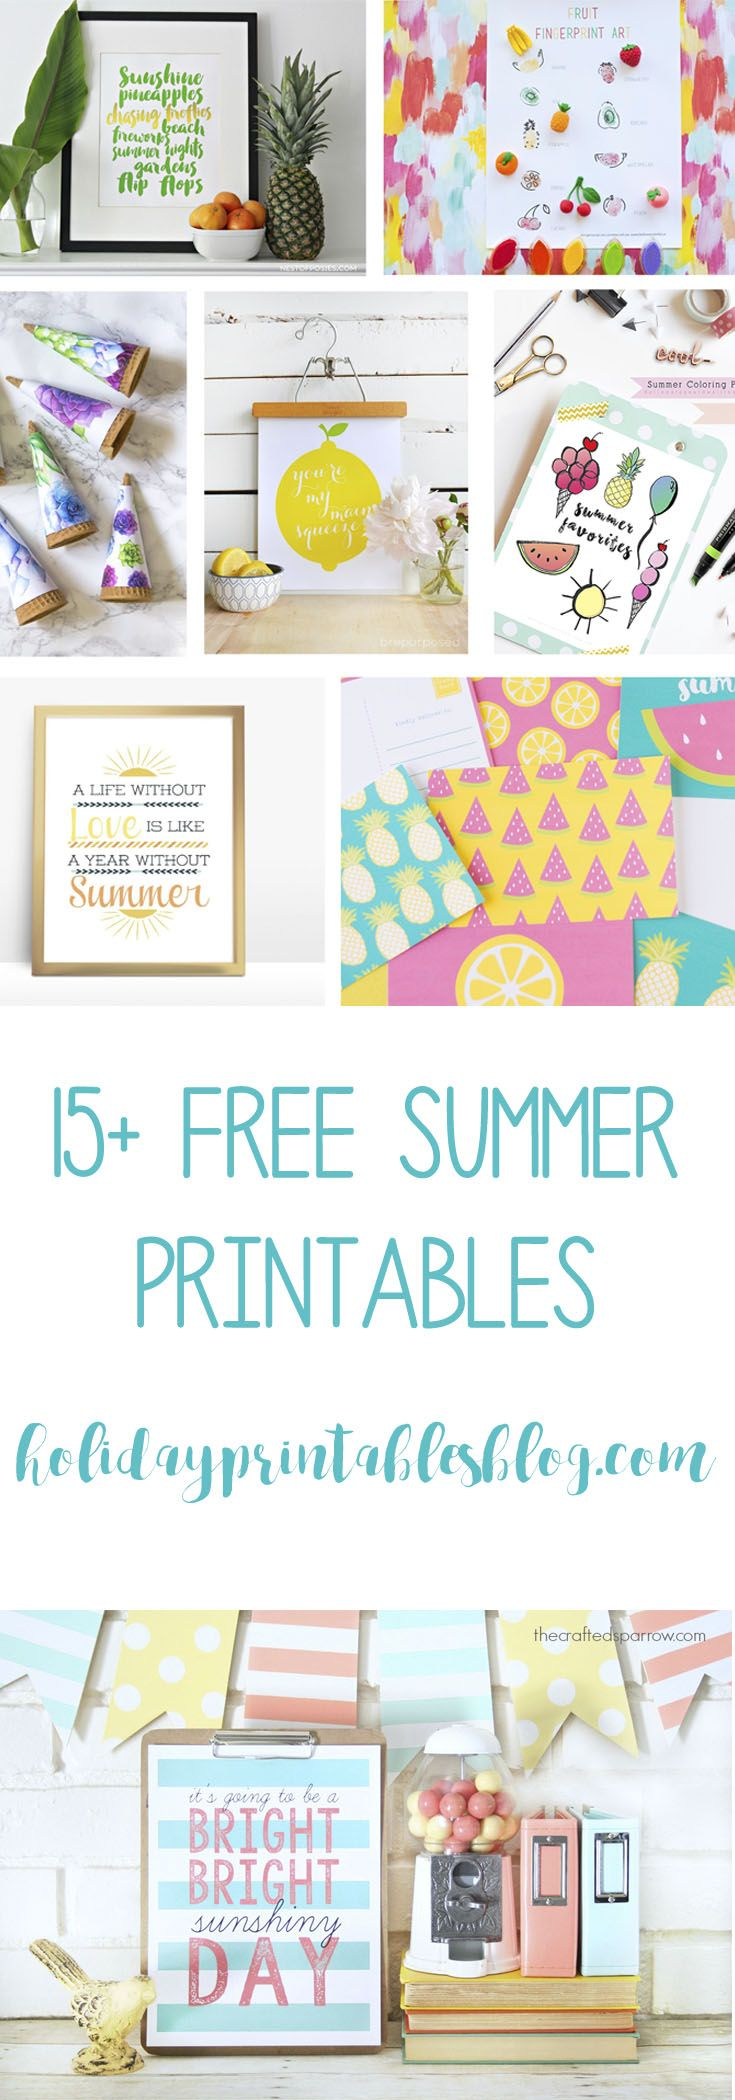 16 Best Gift Ideas Images On Pinterest Cards Free Printables And